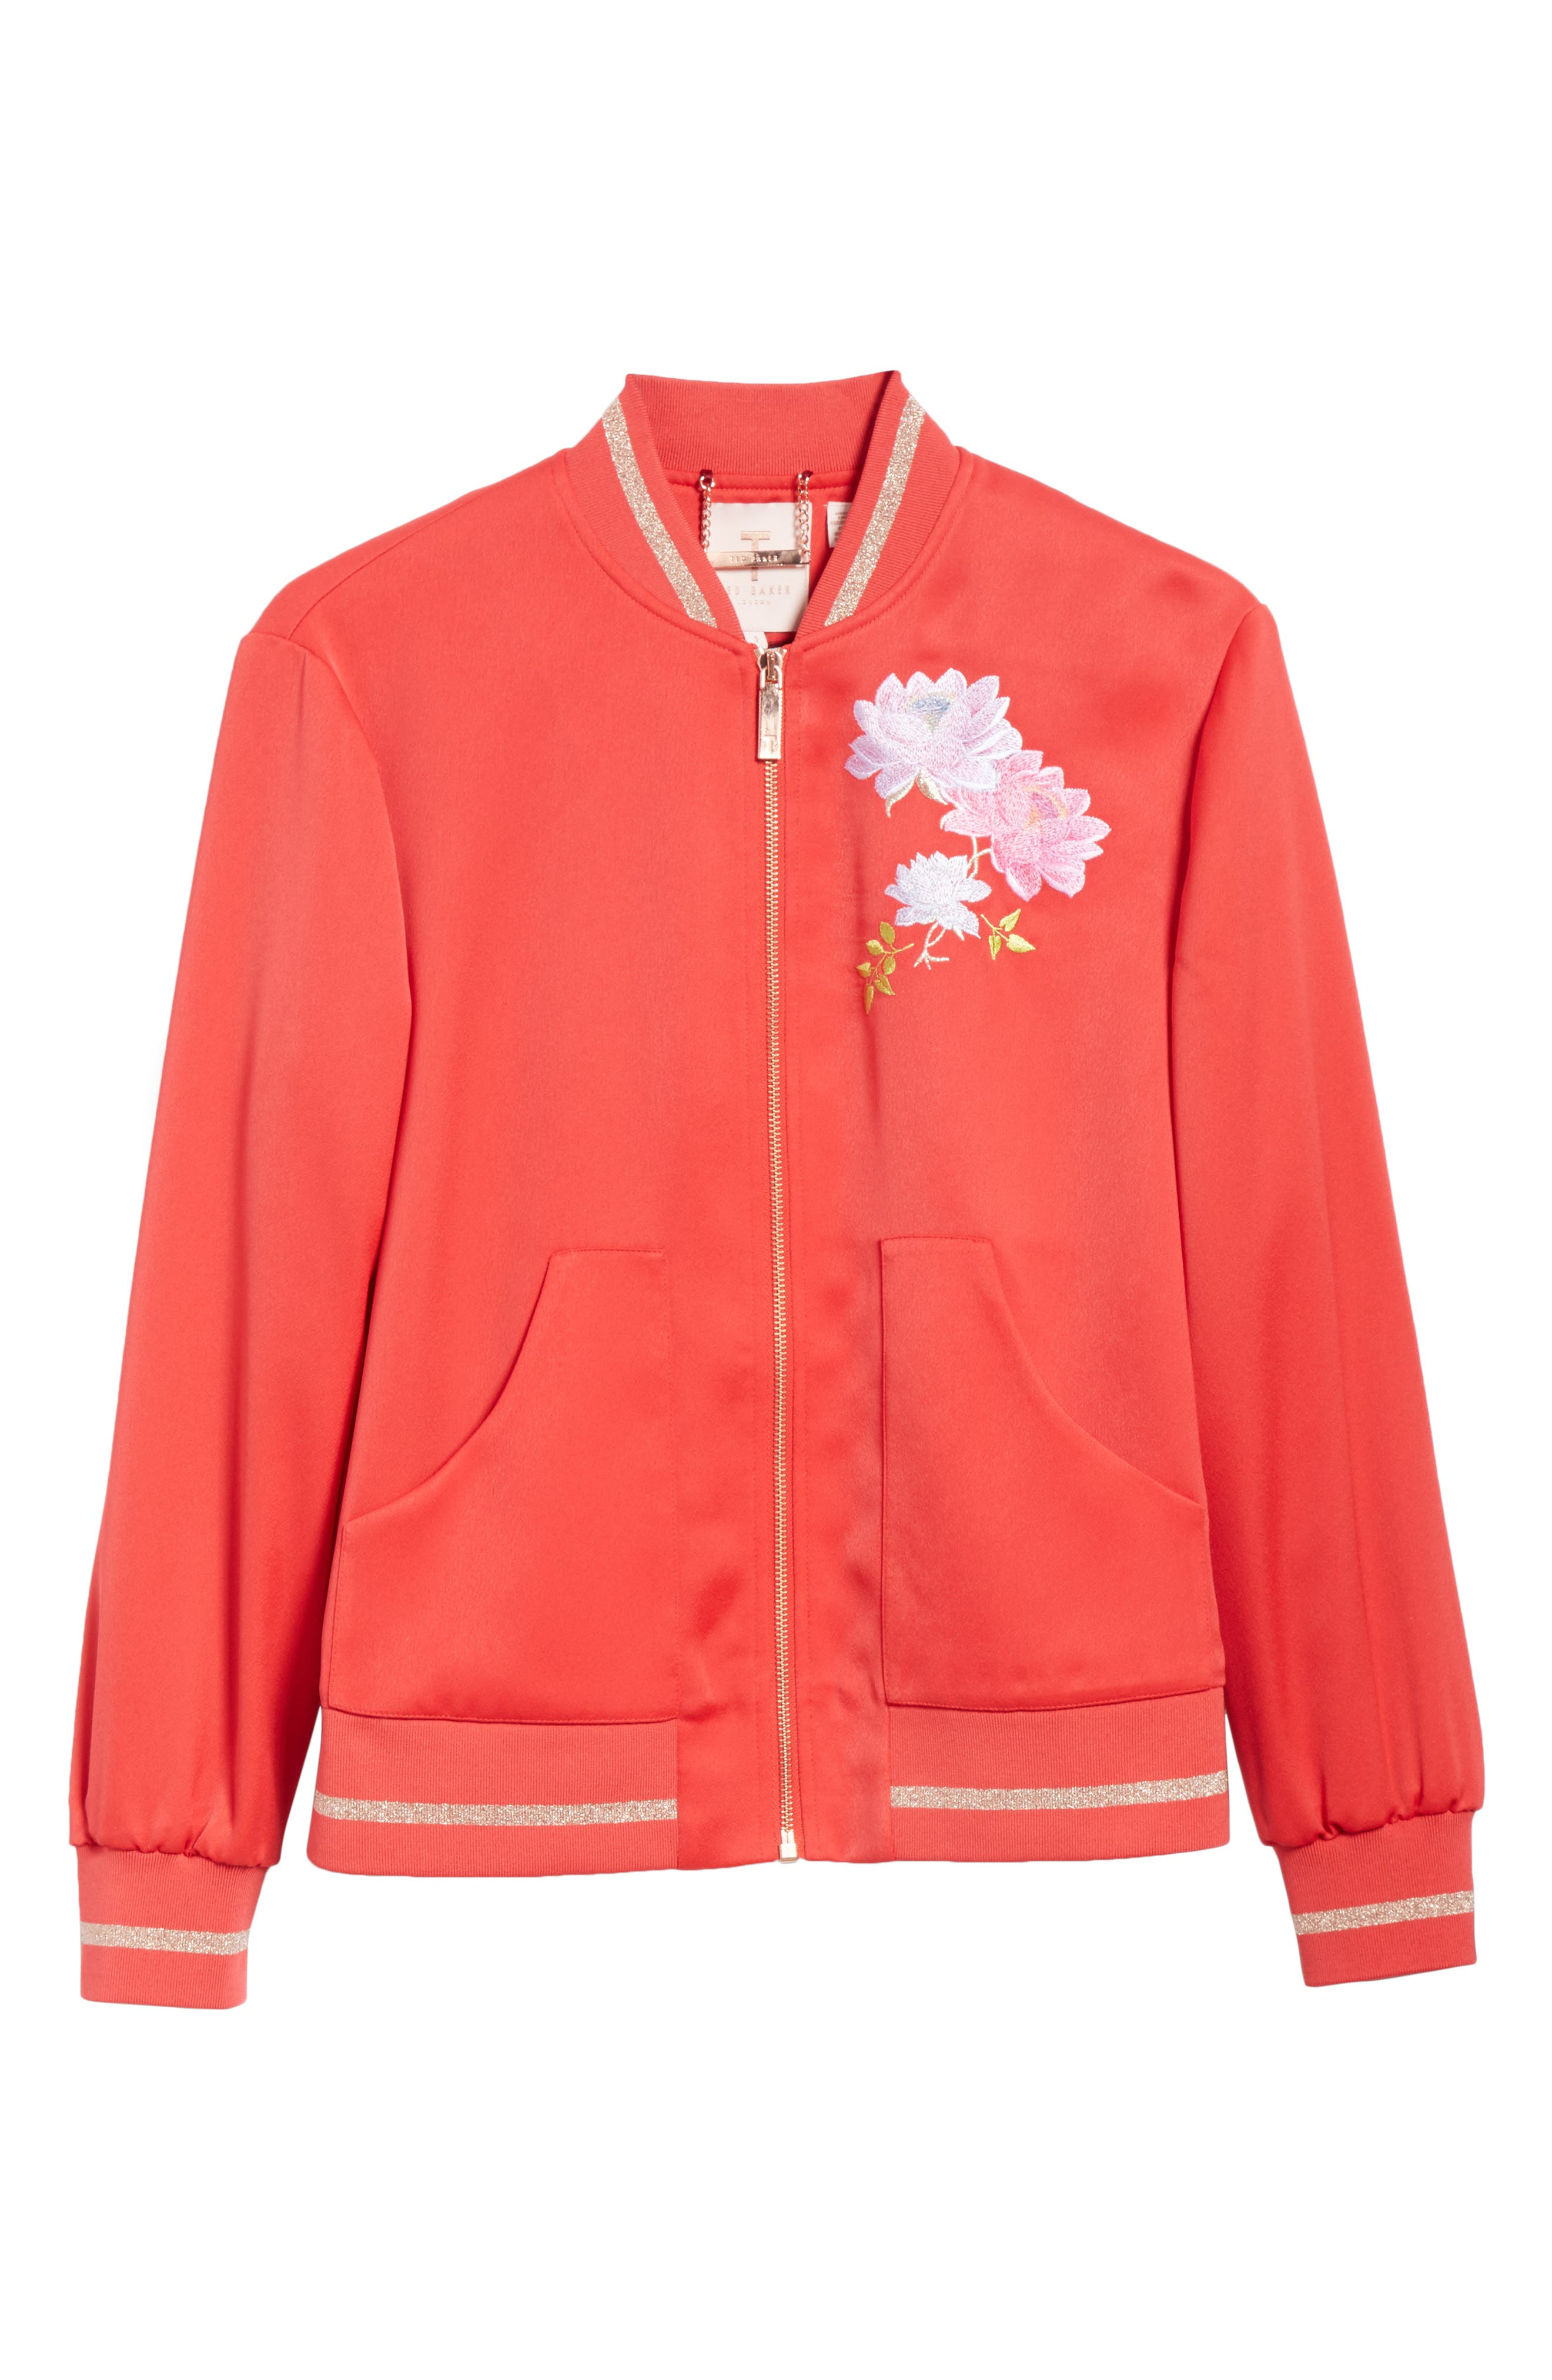 Ruuthe Chinoiserie Embroidery Jacket,                             Alternate thumbnail 5, color,